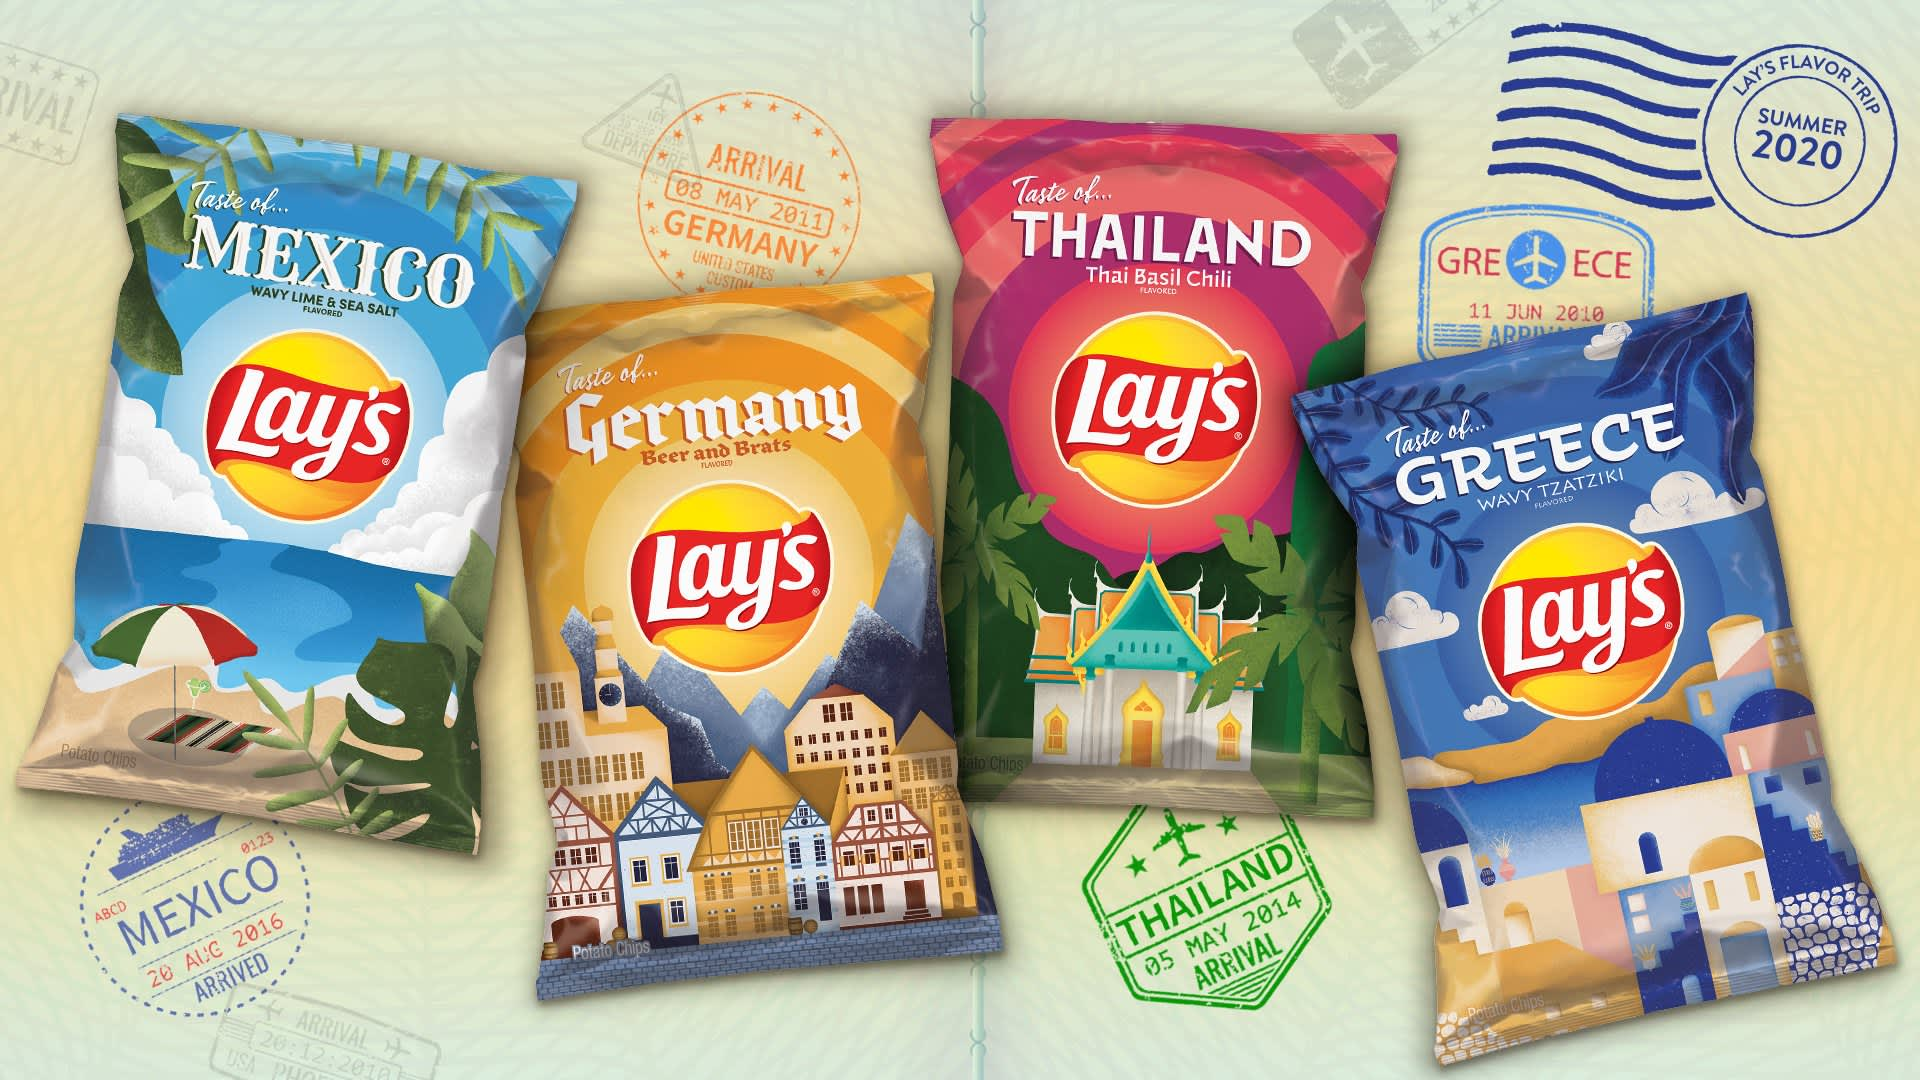 Consumers' interest in adventurous flavors inspired PepsiCo's Frito-Lay to sell top flavors from around the globe in potato chip form this summer.